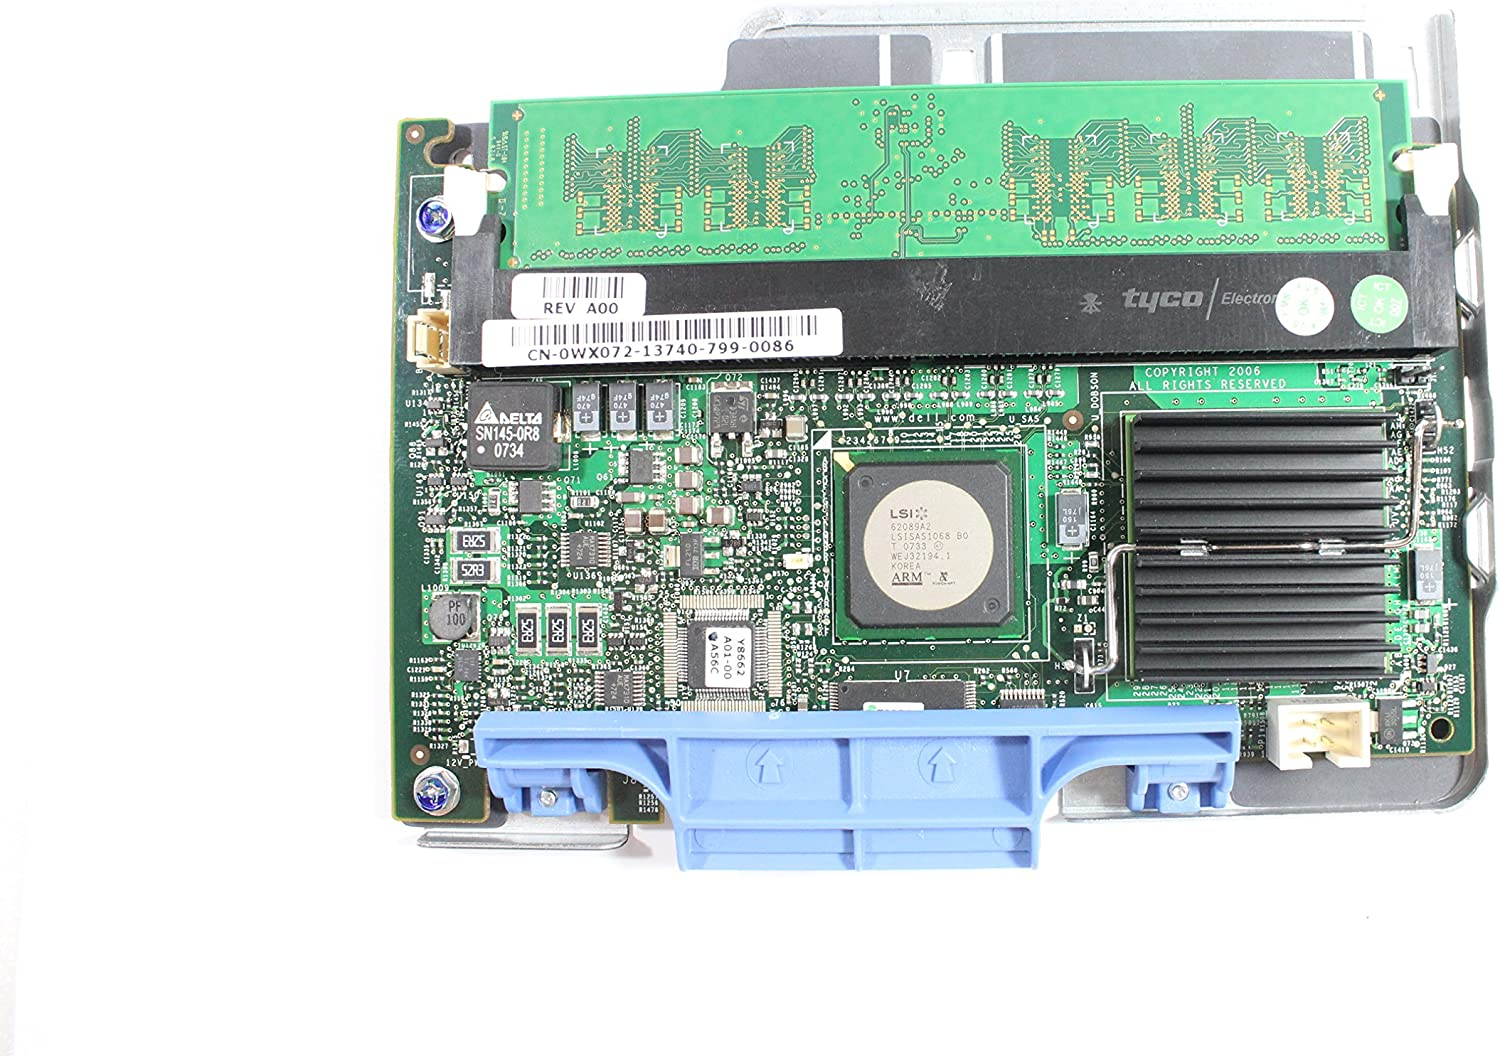 Genuine WX072 NP007 Dell PowerEdge 1950 2950 PERC 5i SAS RAID Controller with 256MB Memory Compatible Part Numbers: WX072, NP007